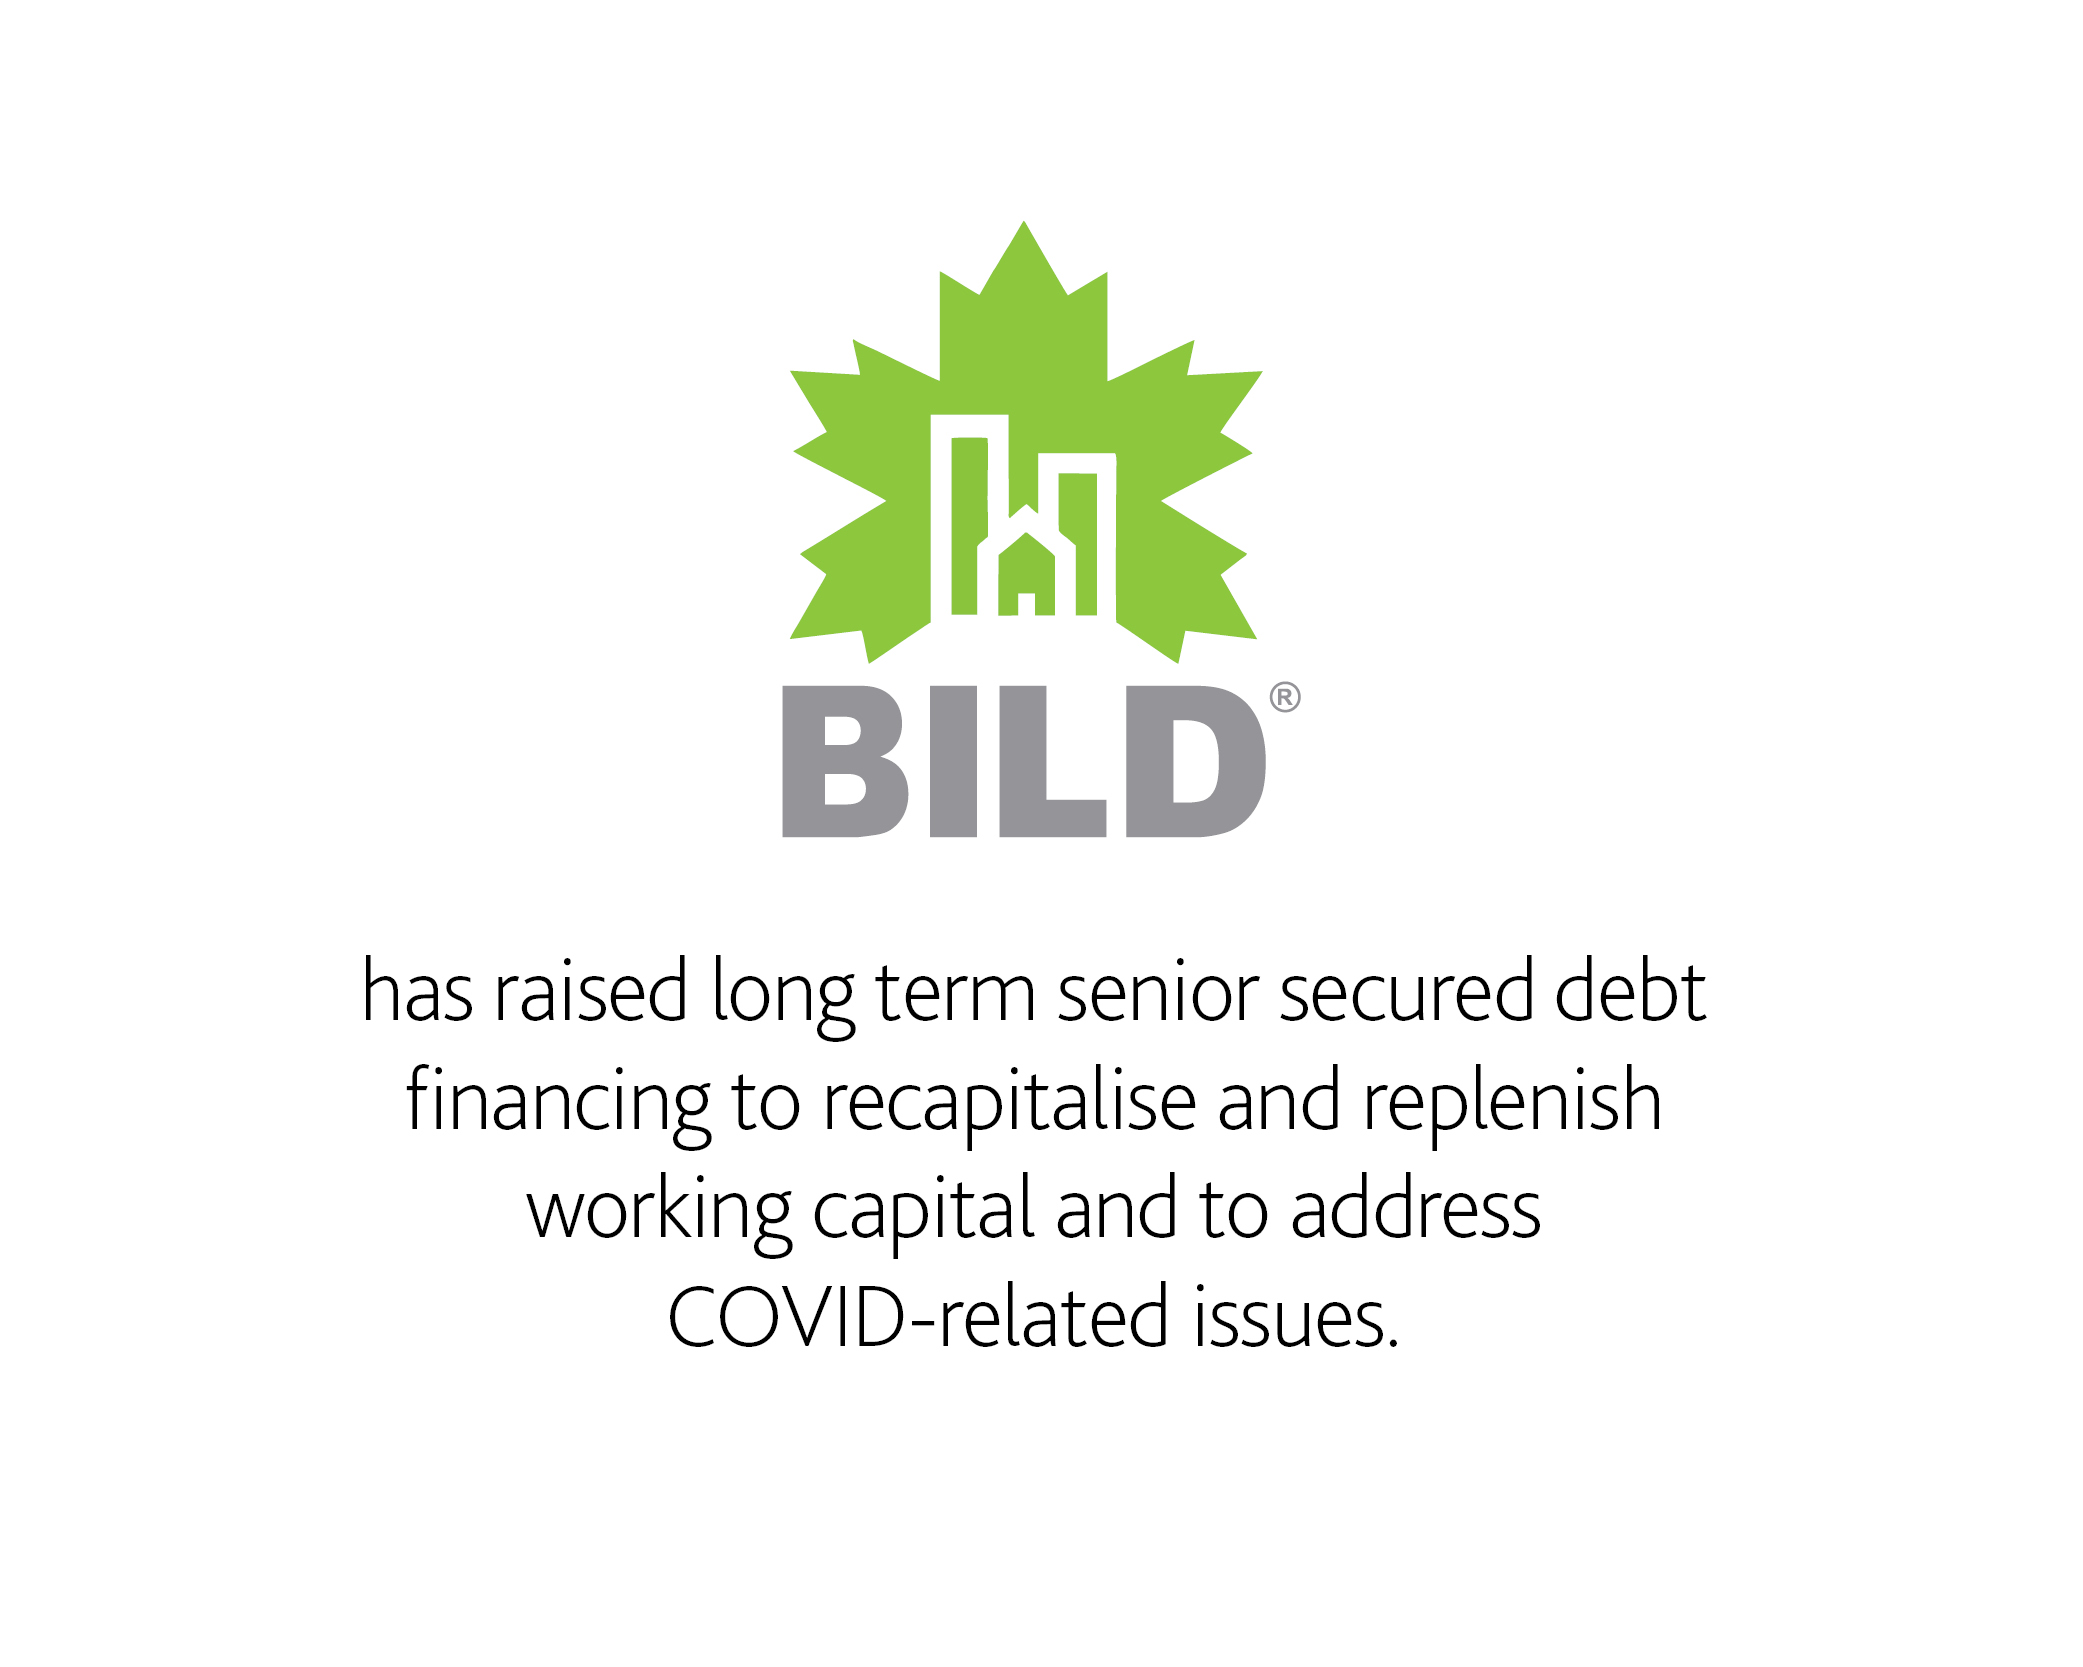 BILD has raised long term senior secured debt financing to recapitalise and replenish working capital and to address COVID-related issues